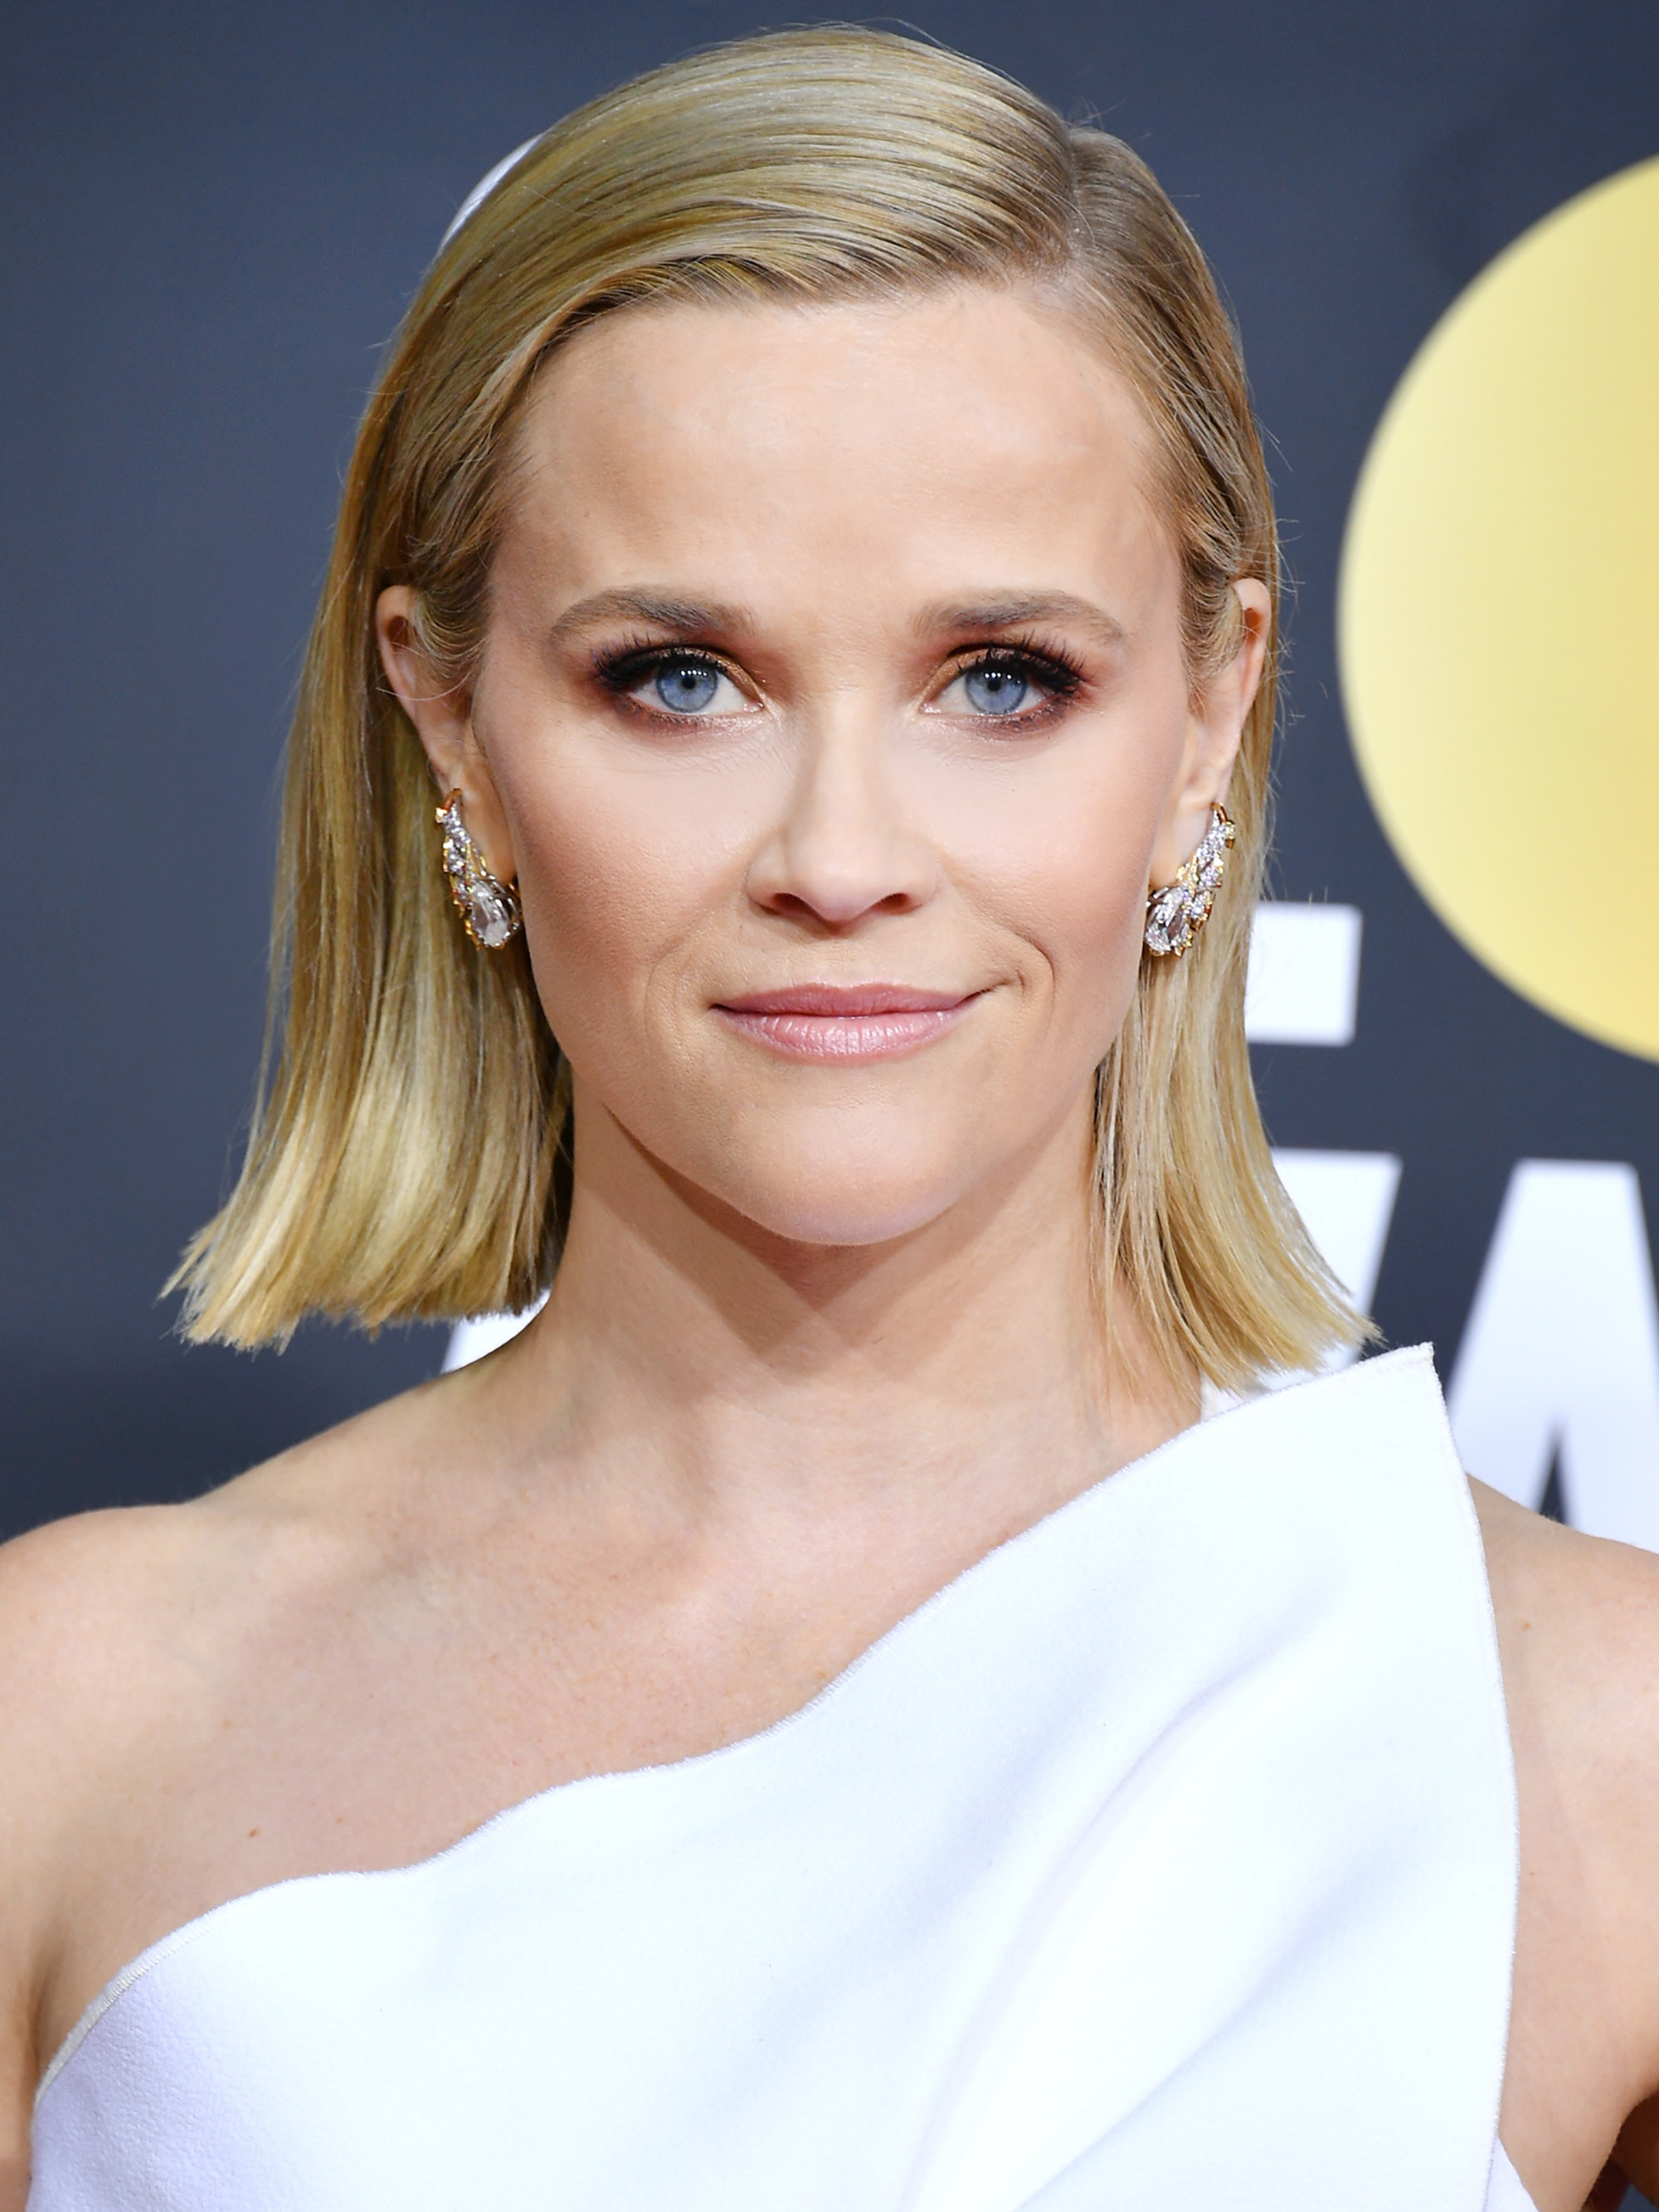 Reese Witherspoon beauty look Golden Globes 2020